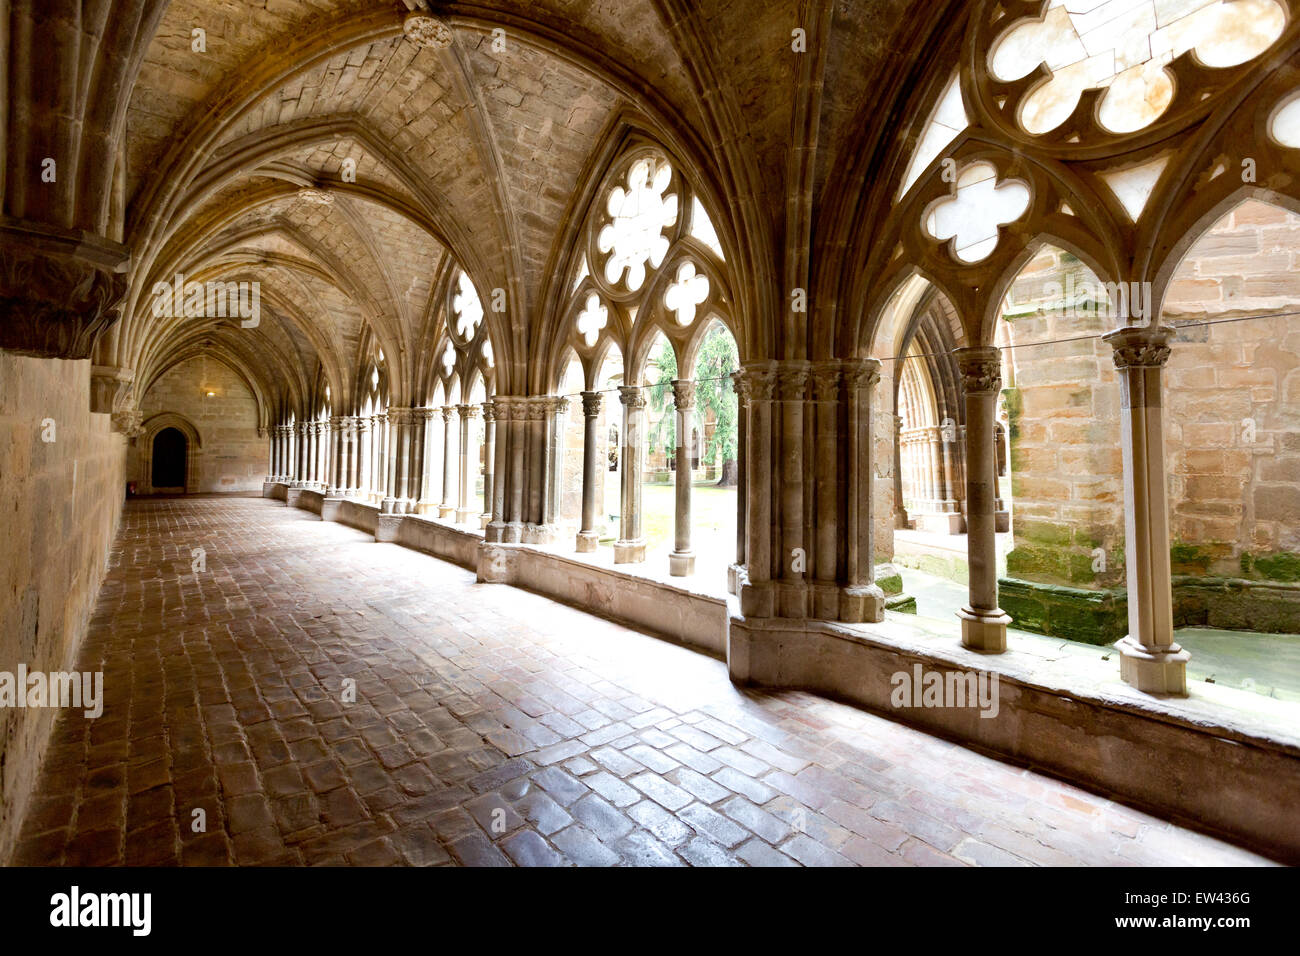 Cloisters in the Royal Cistercian monastery of Santa Maria de Veruela - Stock Image